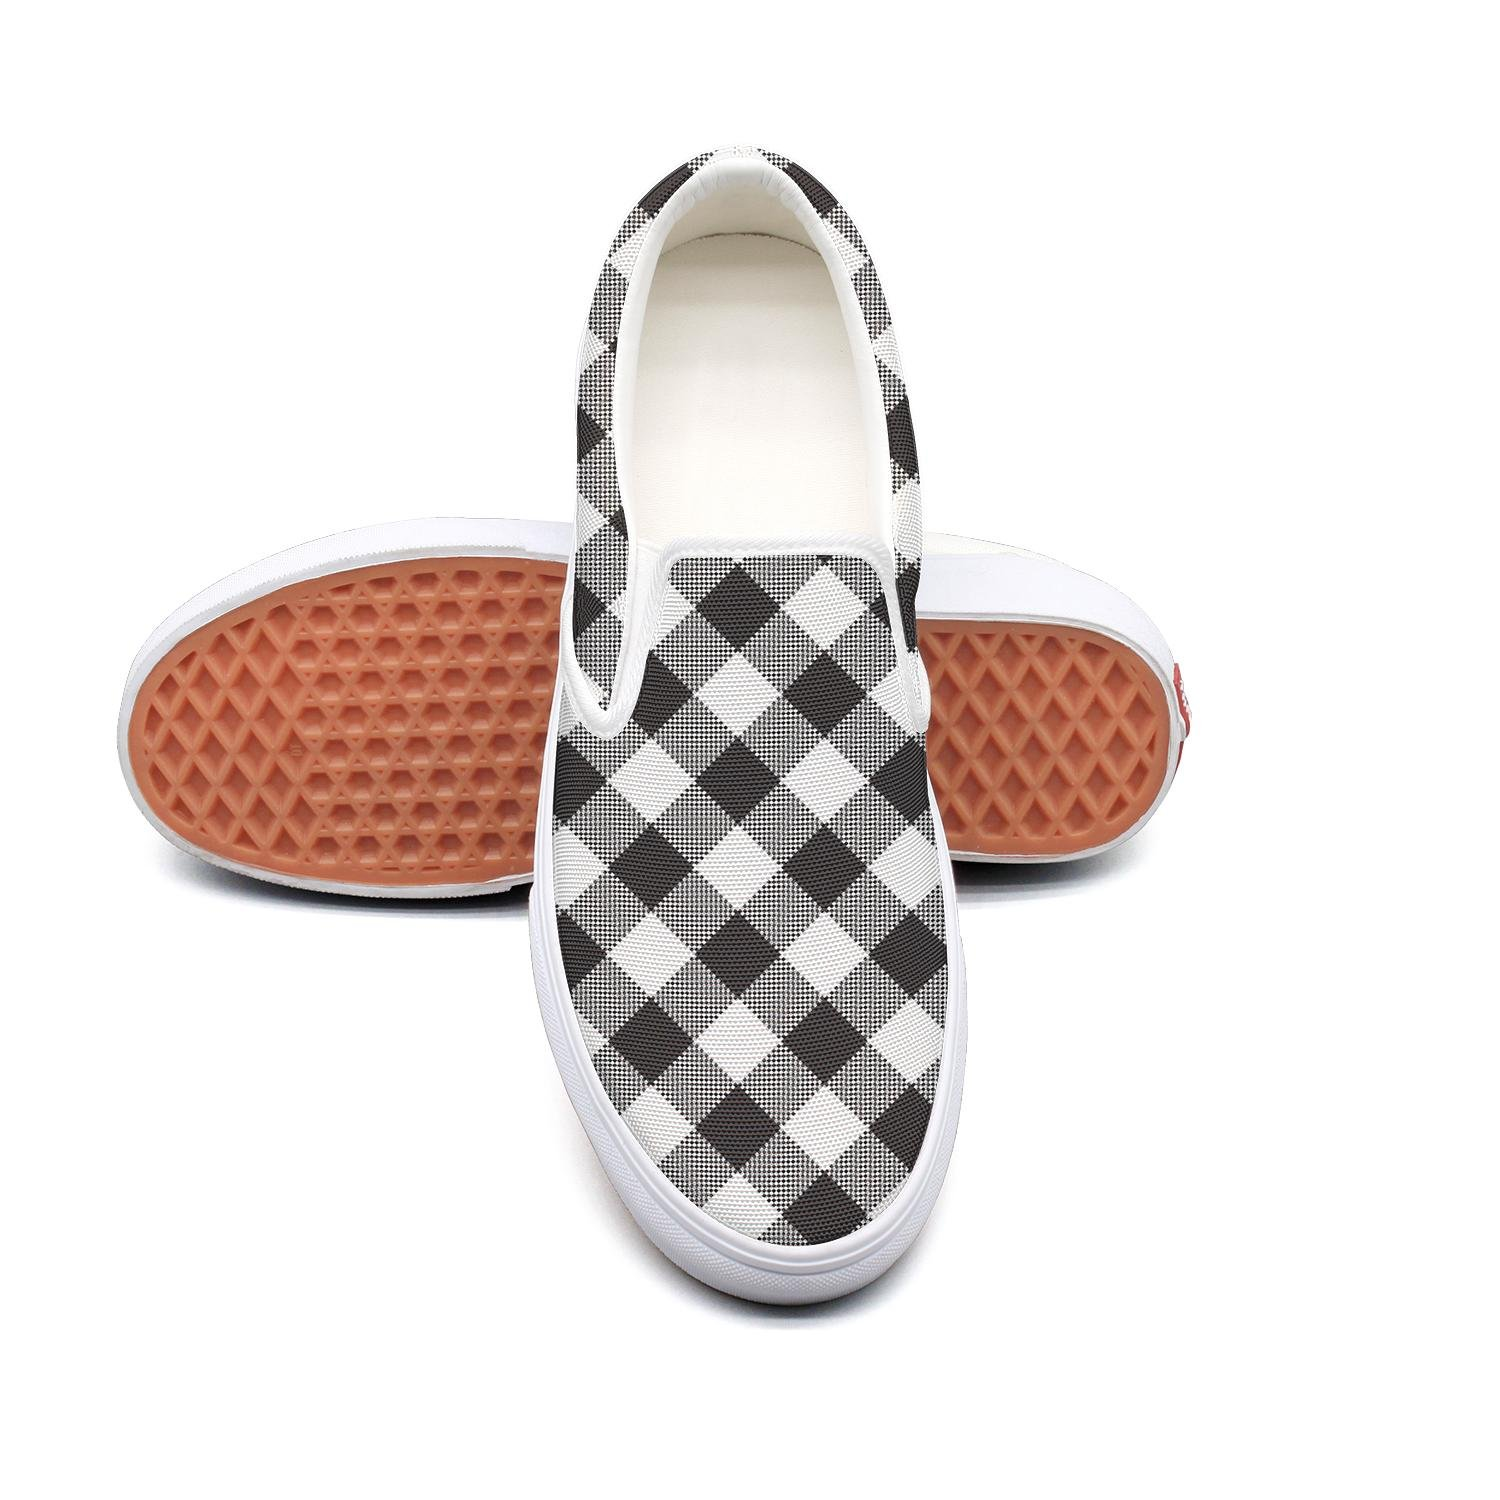 Colorful Checkerboard Slip on Canvas Upper Sneakers Canvas Shoes for Women Fashion